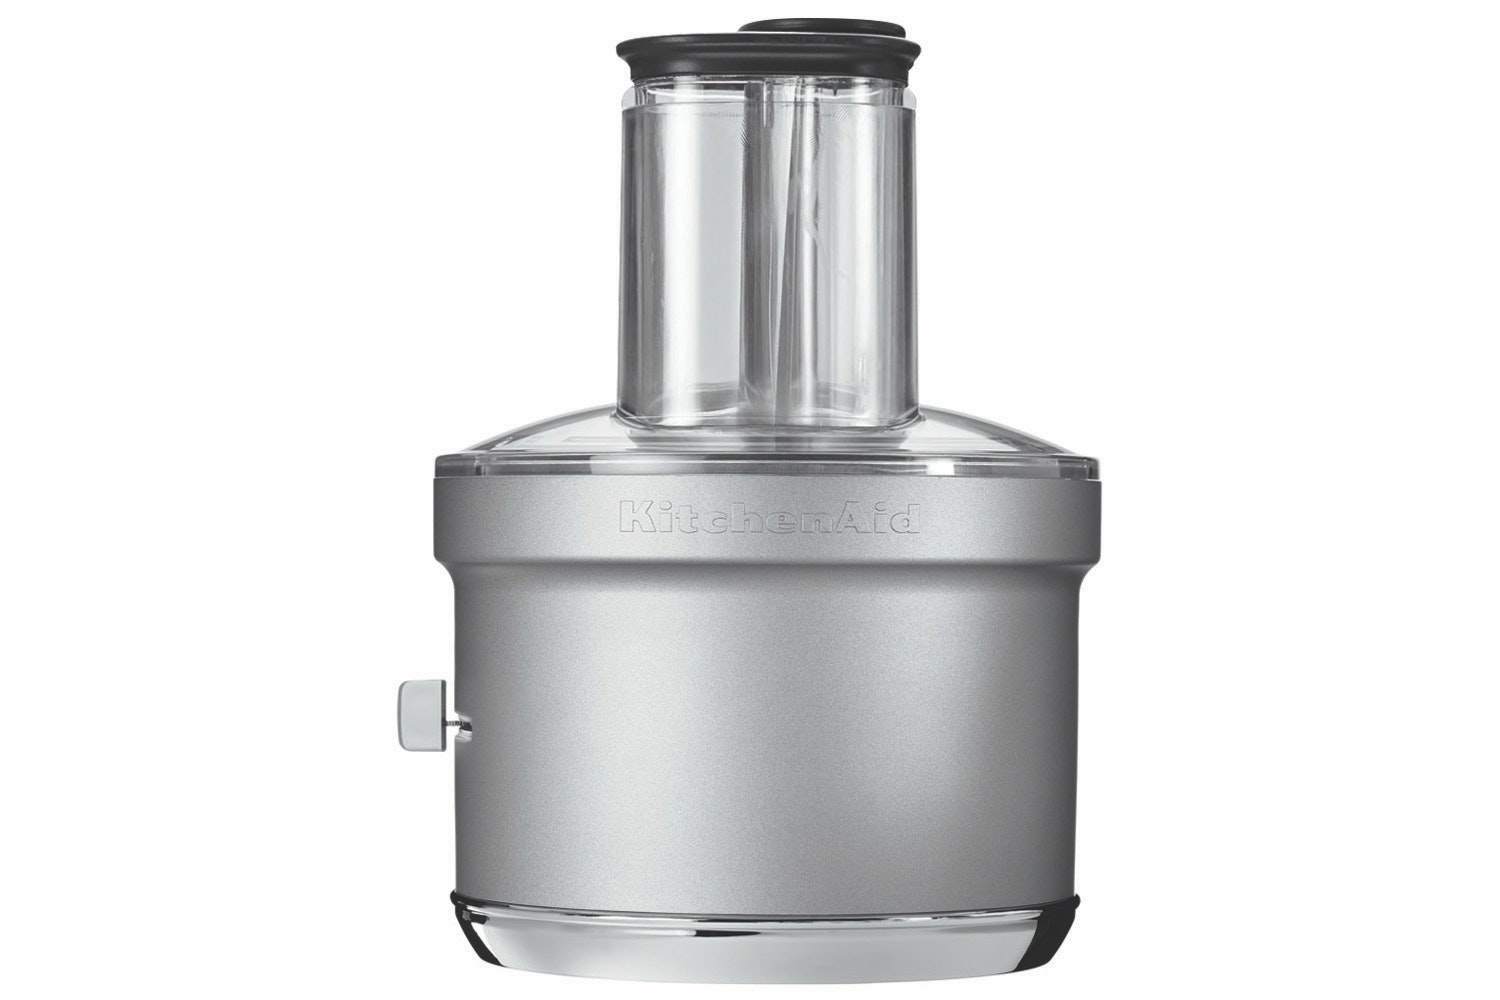 KitchenAid Food Processor Attachment For Stand Mixer | Grey ...